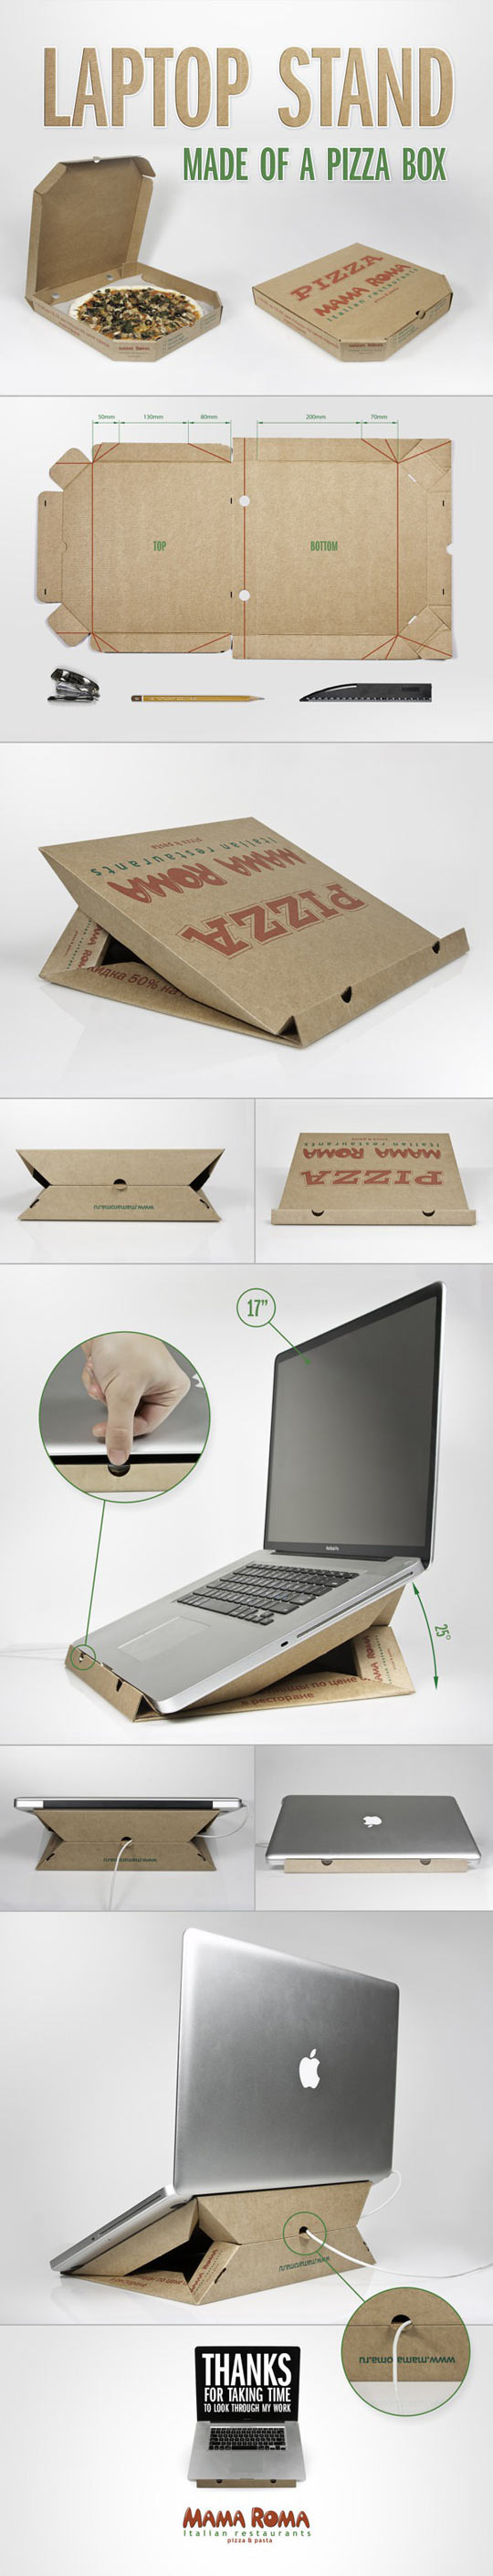 funny-laptop-stand-pizza-box-cardboard